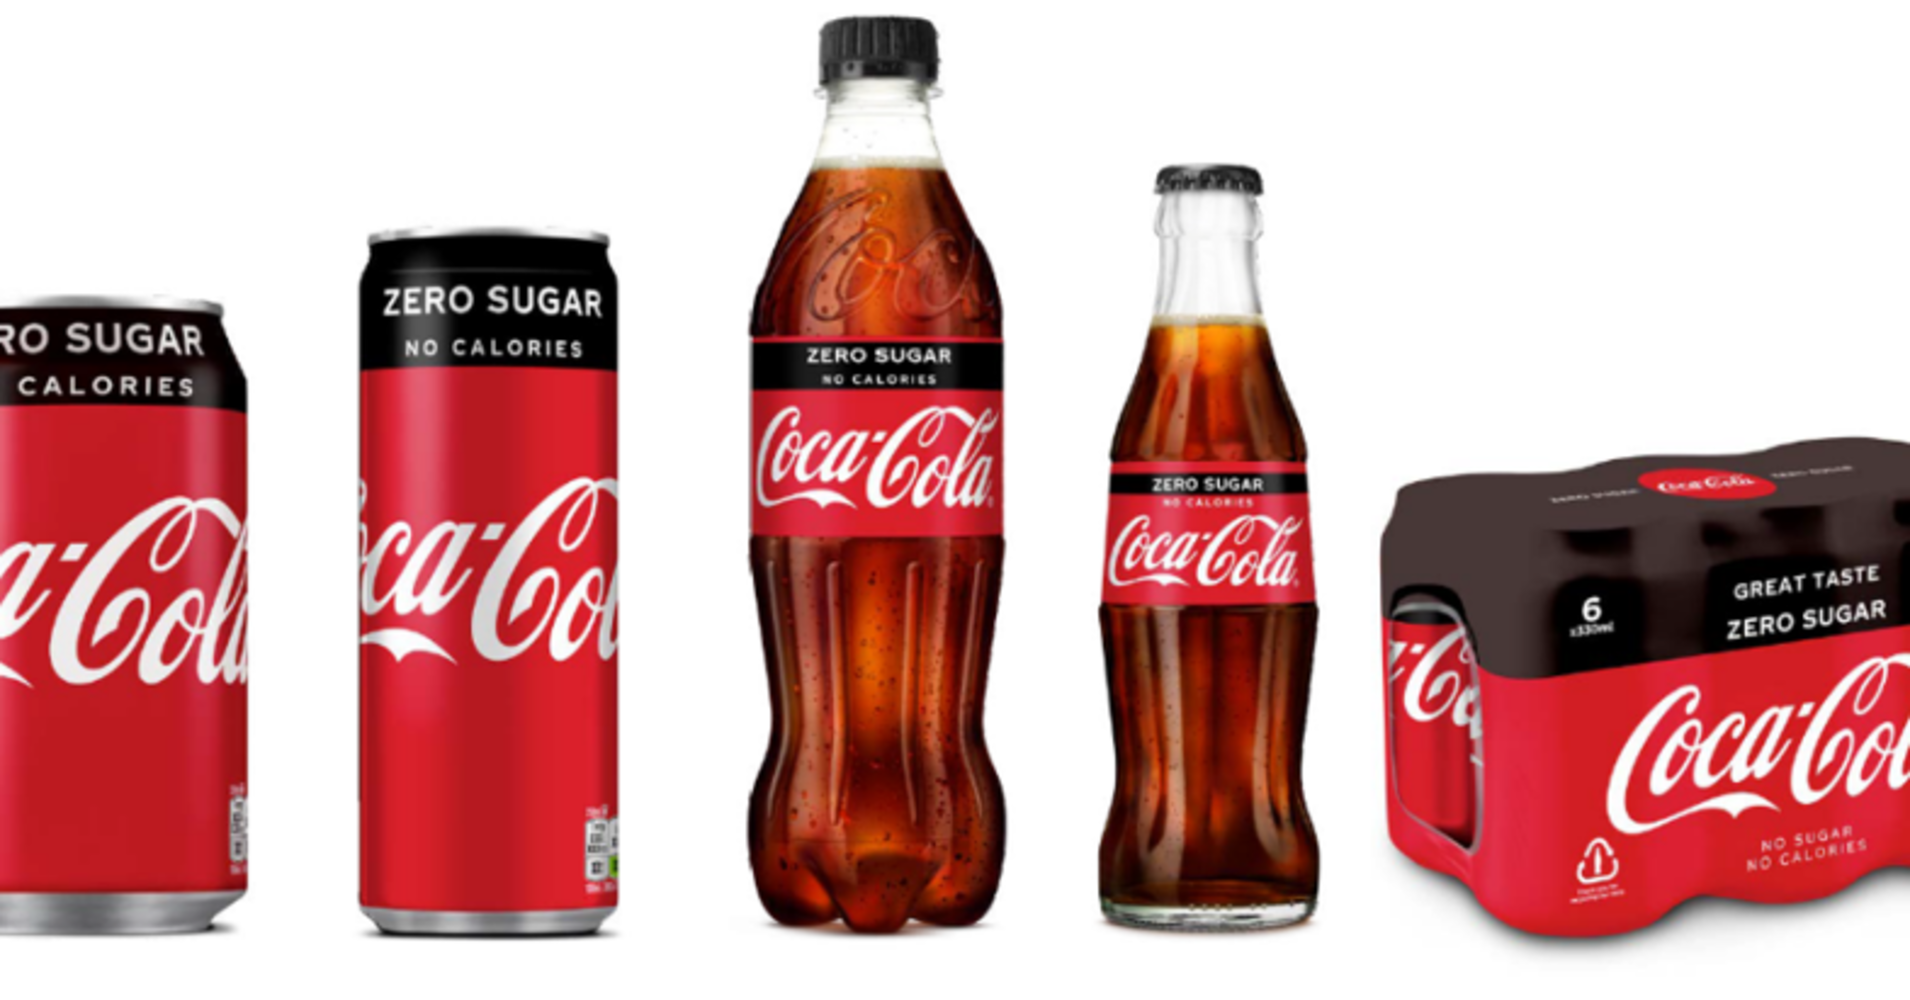 Coca-cola Uk Redesigns Zero Sugar Packaging To Look Like The Original Coke photo